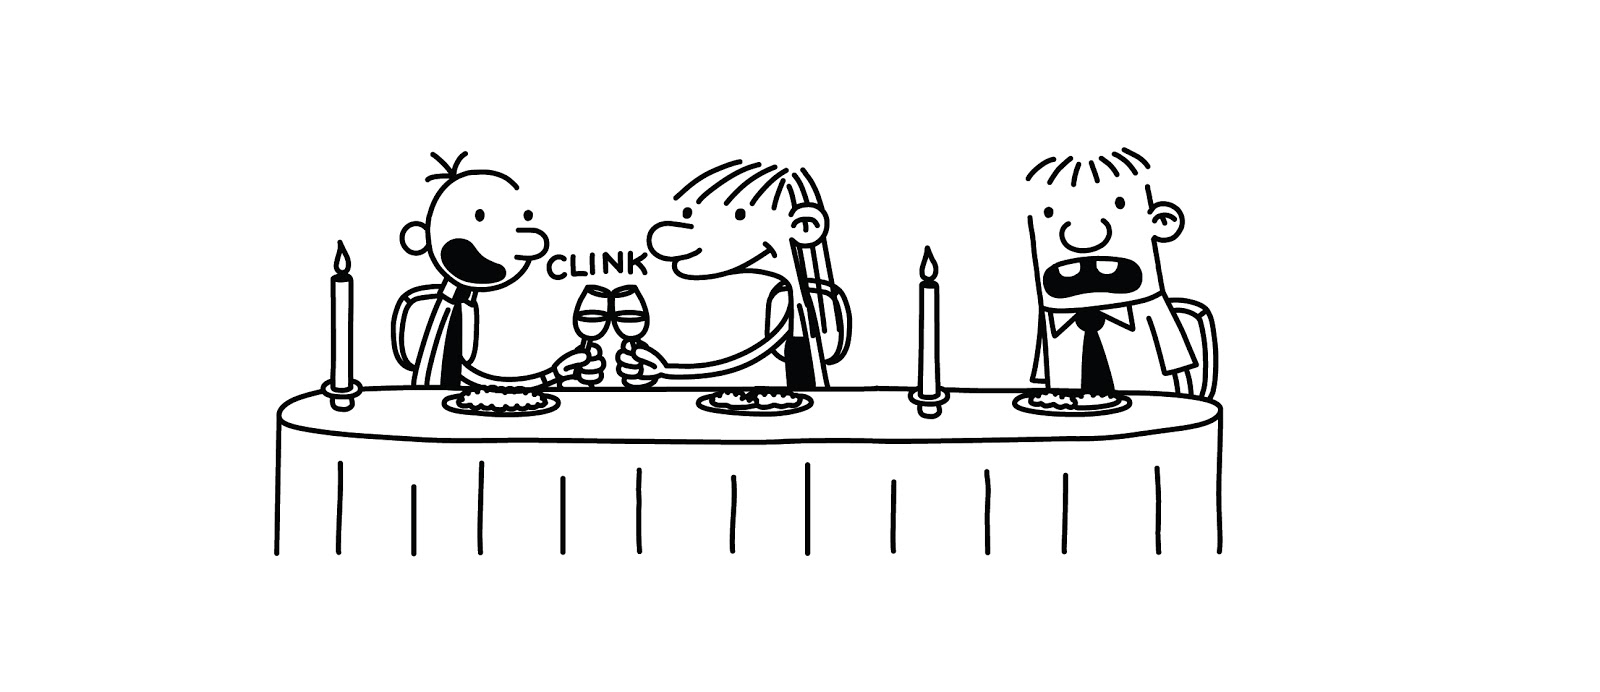 Diary Of A Wimpy Kid Characters The Third Wheel Diary of a Wimpy Kid The